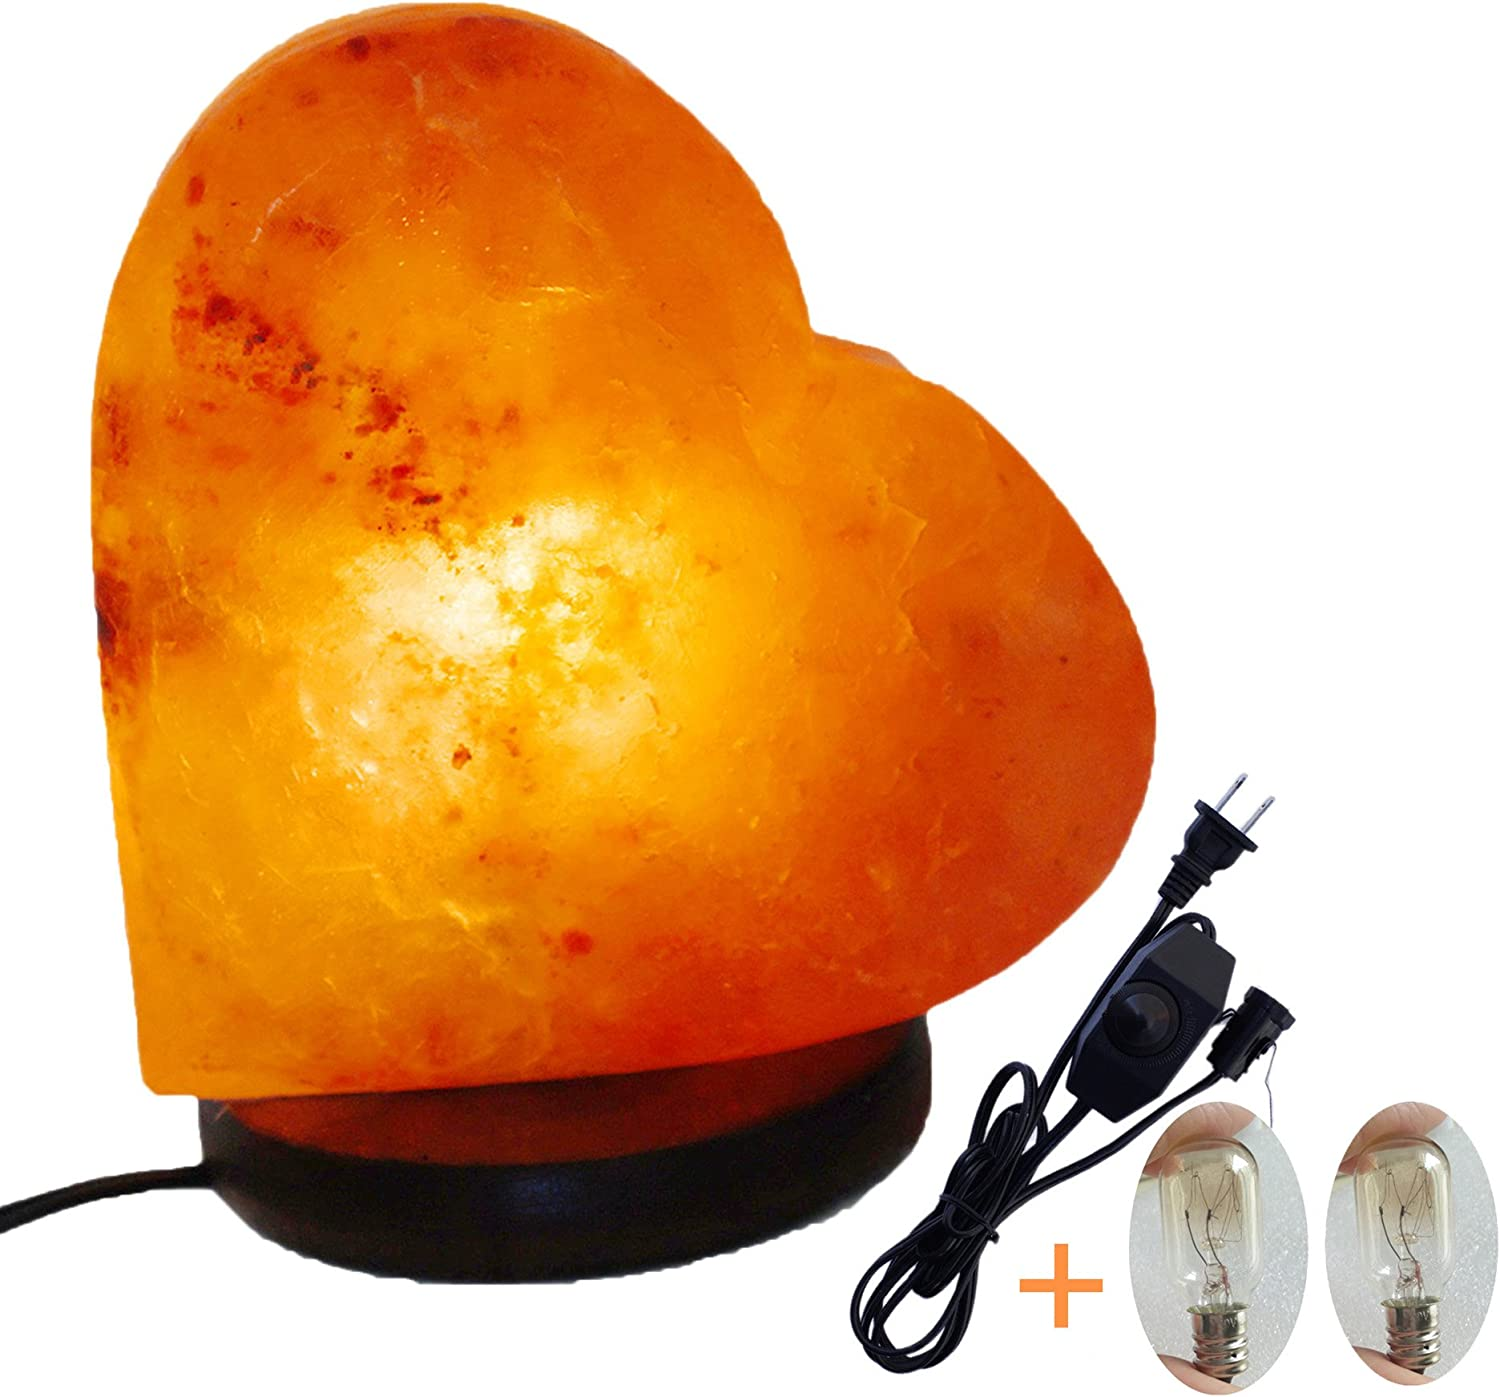 6-7 inch 3-4lbs Wooden Base Gift Box Amoystone Natural Himalayan Salt Lamps with UL Dimmer Cord /& Bulbs Small Salt Rock Lamp